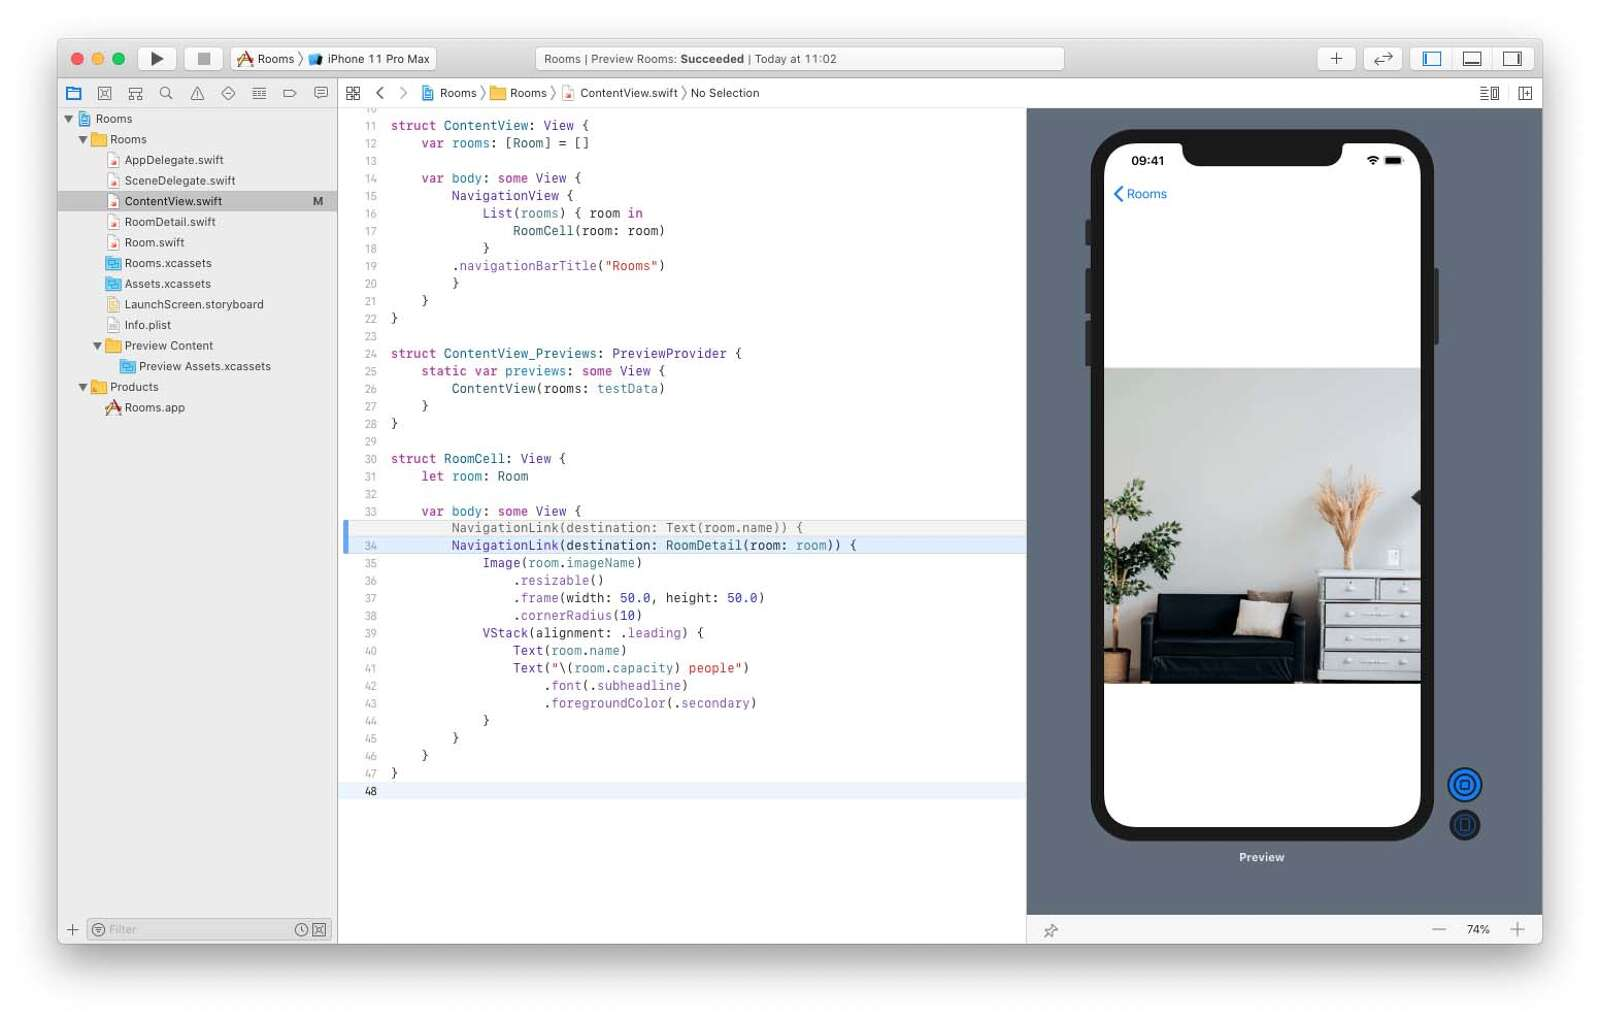 https://res.cloudinary.com/codewithjan/image/upload/v1578453735/swiftui-by-examples/swiftui-by-examples-39.jpg